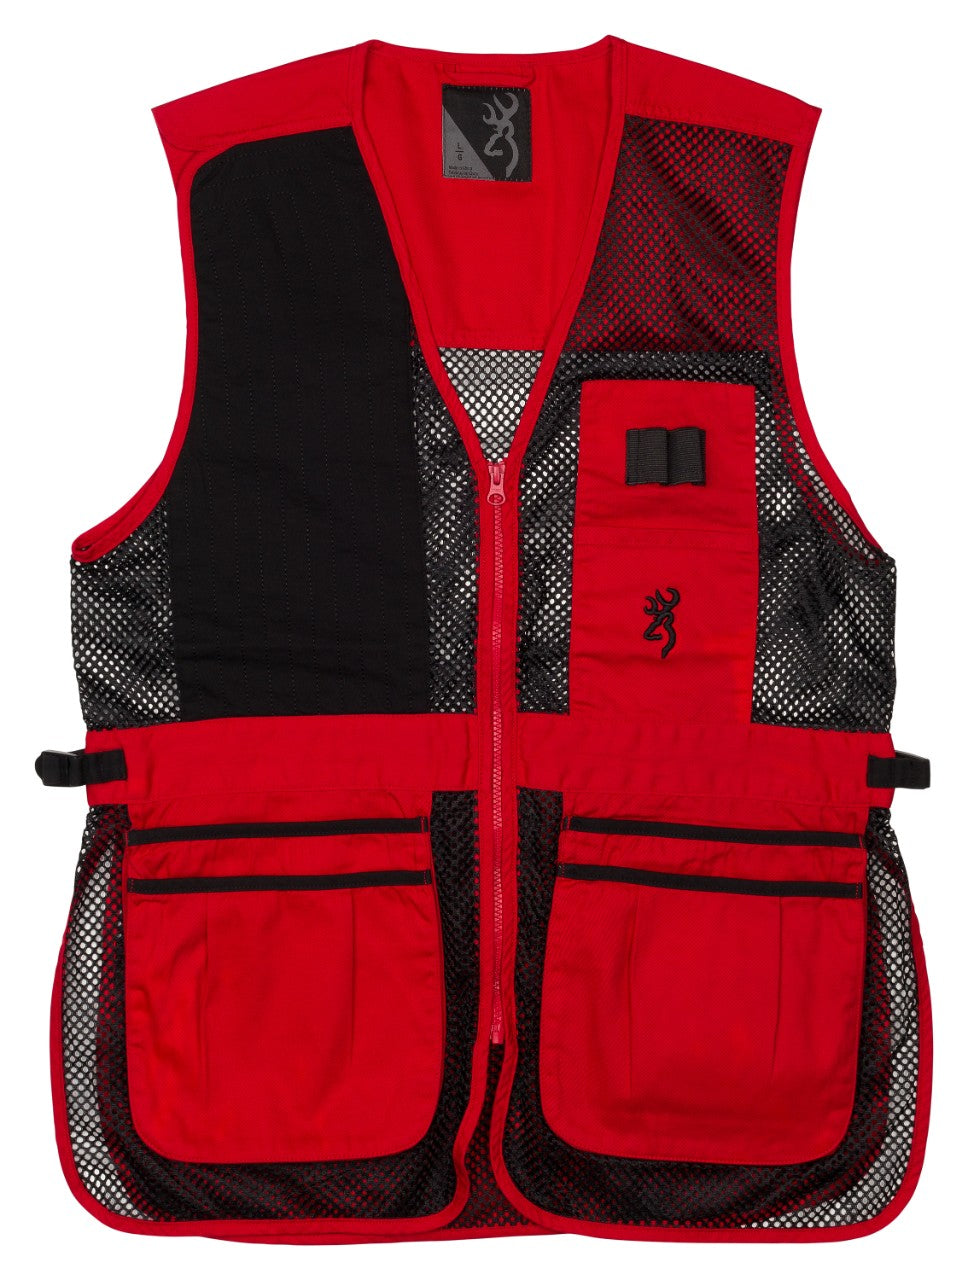 VST,TRAPPER CREEK RED/BLACK,2XL